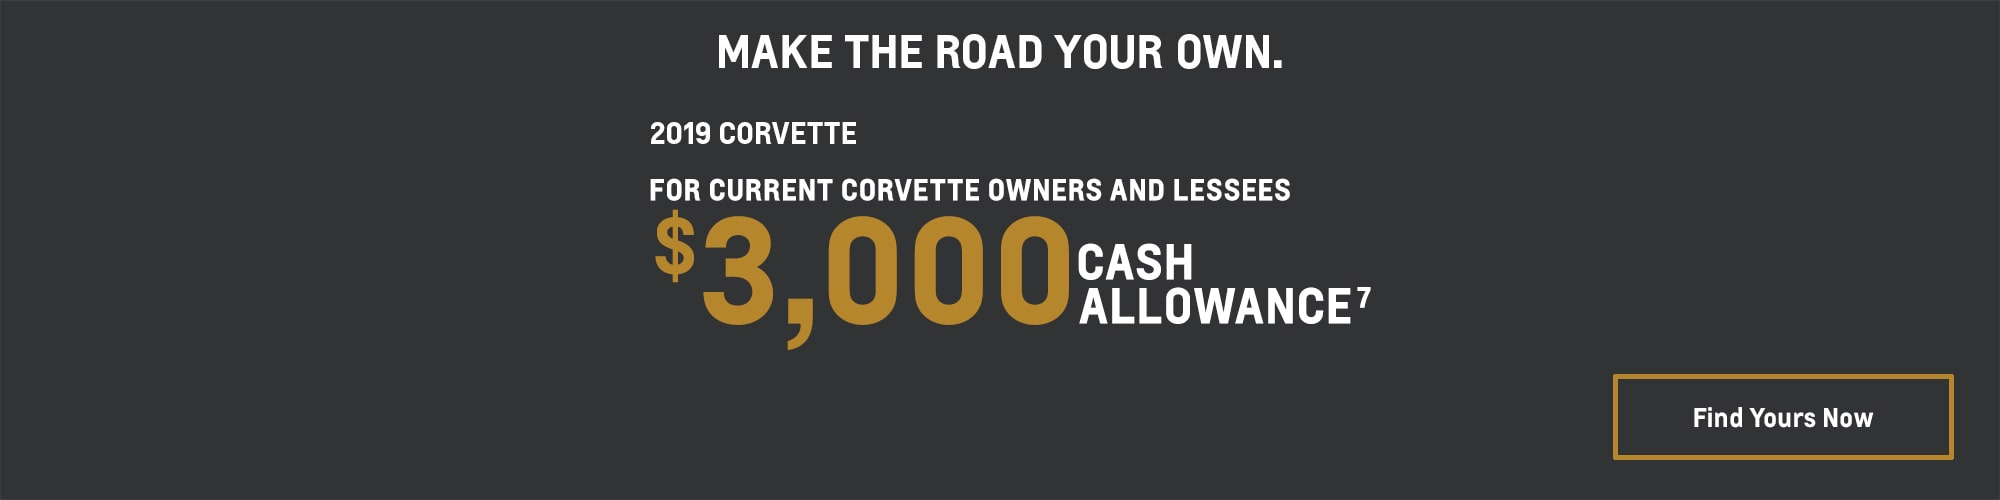 2019 Corvette: $3,000 Cash Allowance